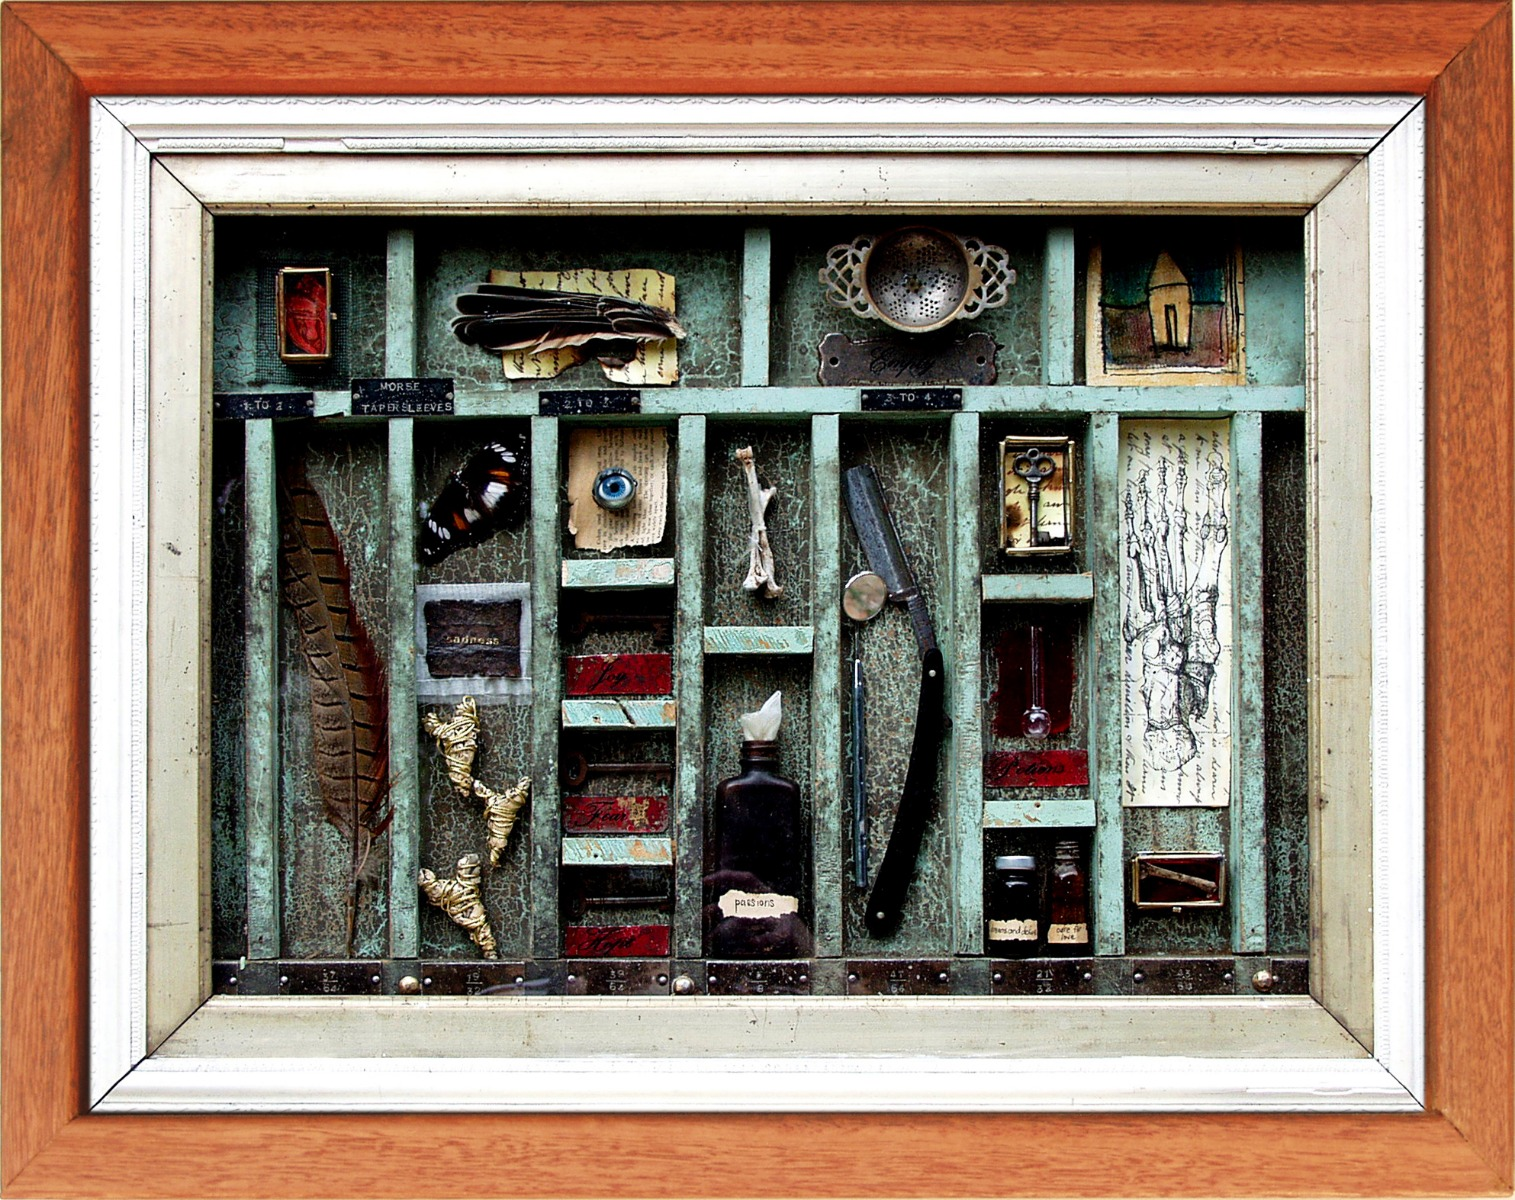 Collection frames custom picture frames collection shadow box that will showcase your items in the way they deserve find a collection display case today to protect while coordinating your jeuxipadfo Image collections